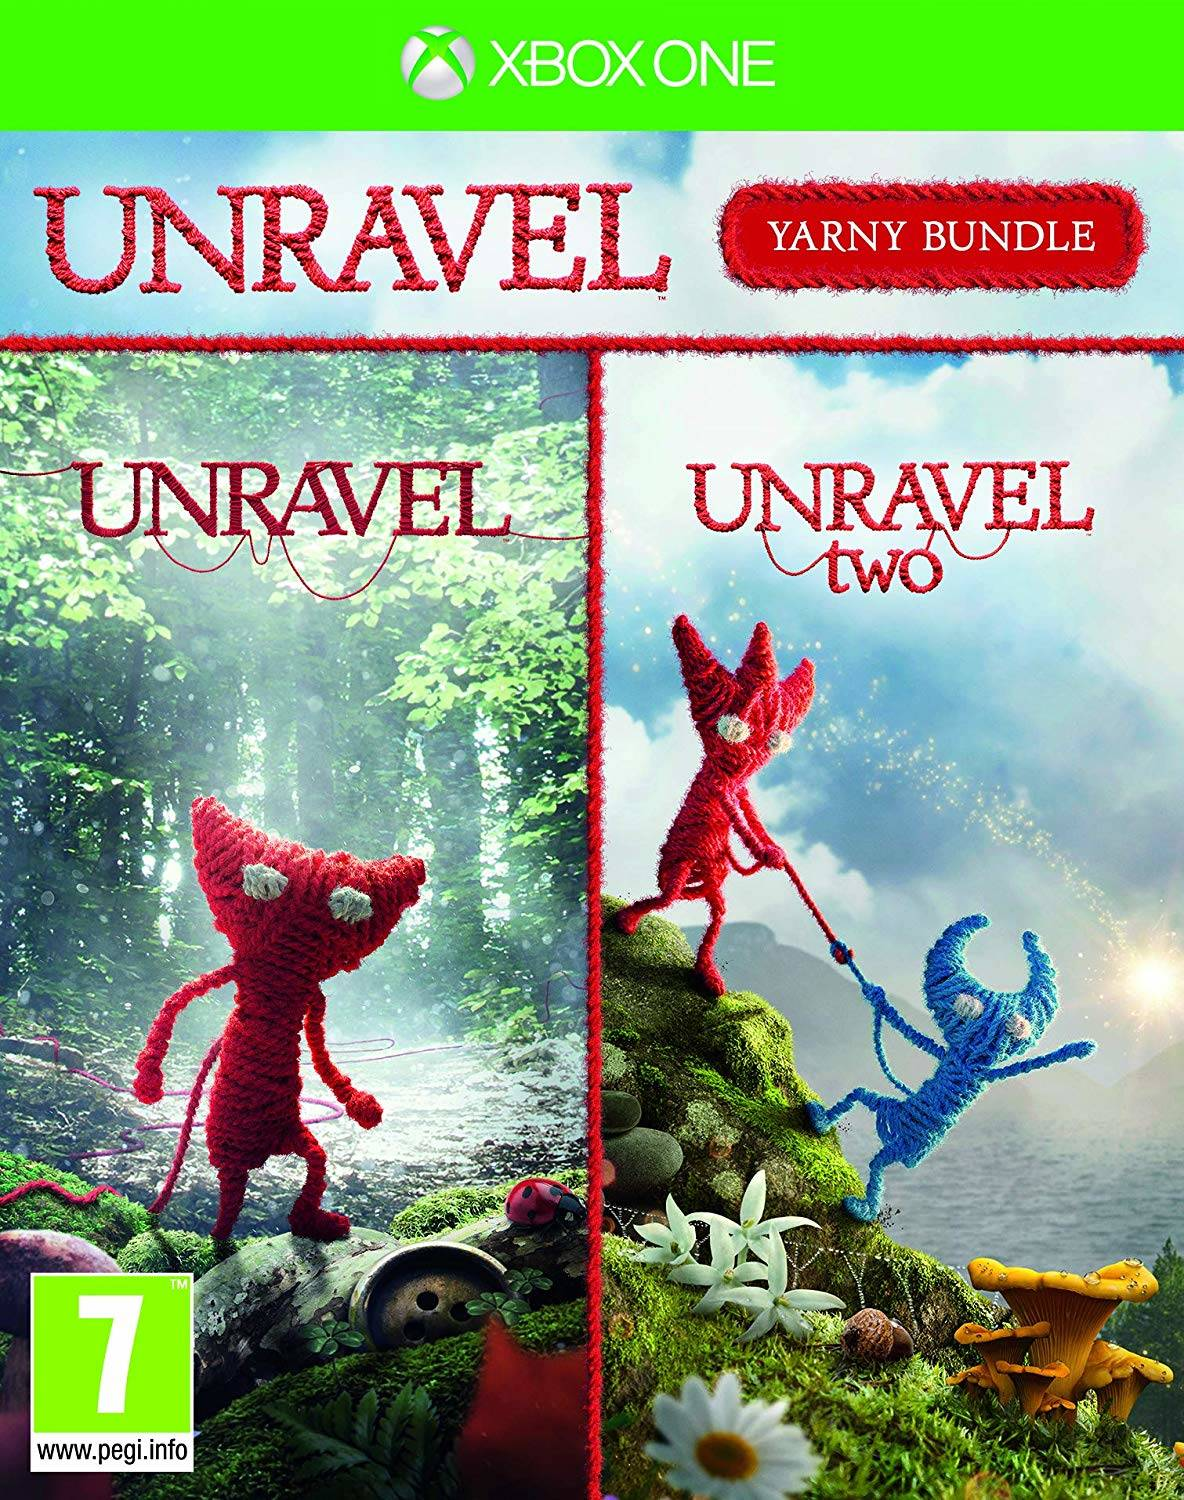 Unravel Yarny Bundle (XONE)